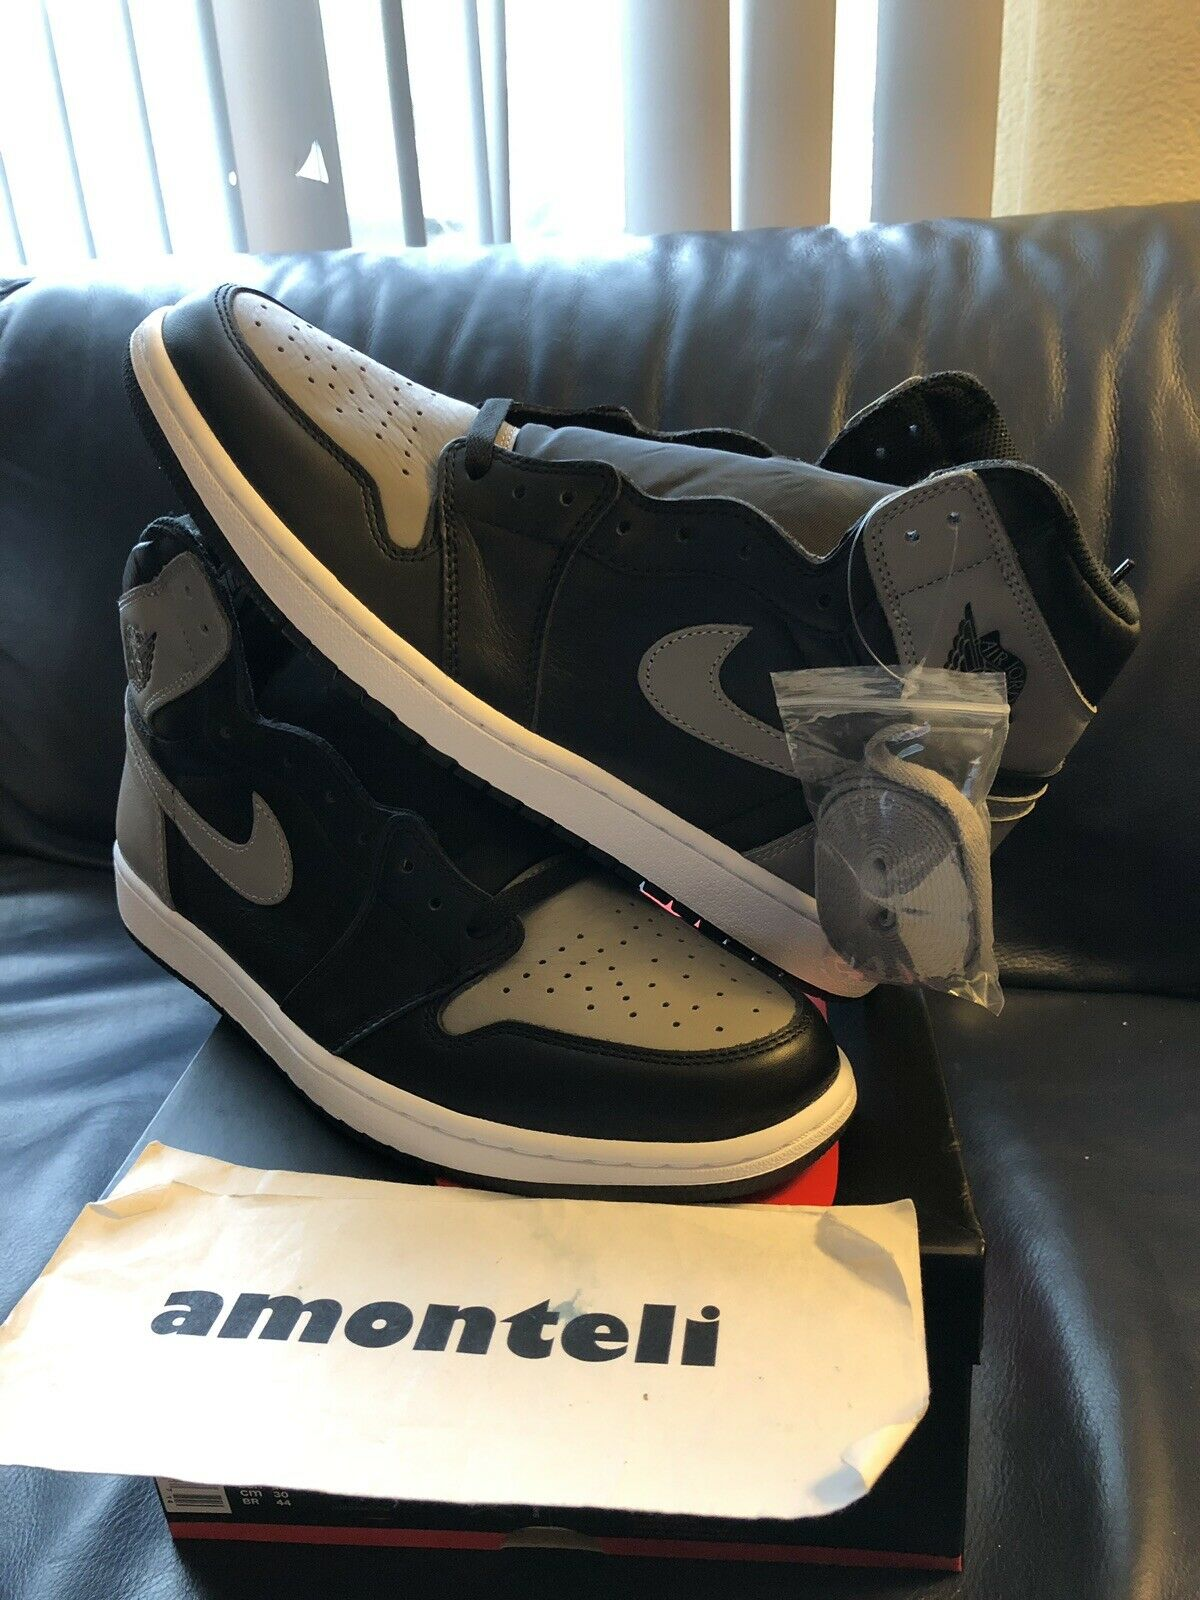 BRAND NEW JORDAN 1 RETRO HIGH OG - SHADOW - SIZE 12